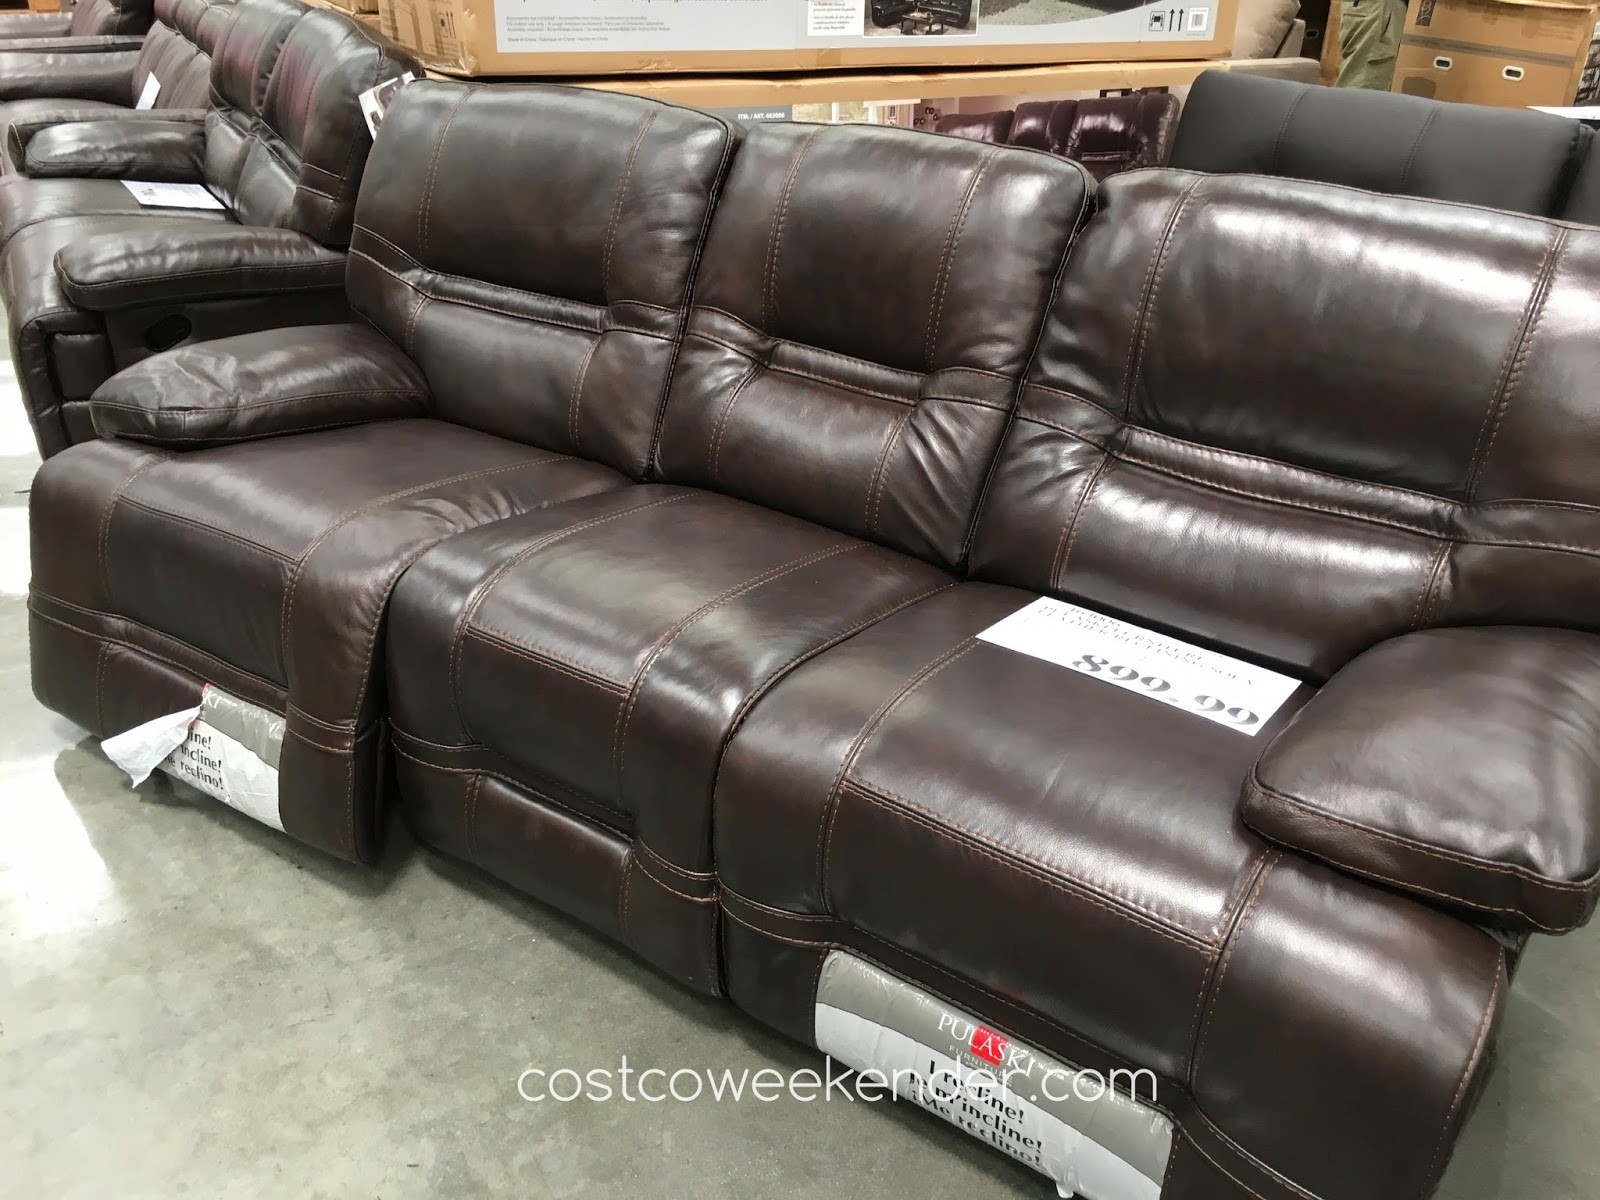 Costco Recliner sofa Best Of Costco Home Furniture Pulaski Leather Power Reclining sofa Costco Inspiration